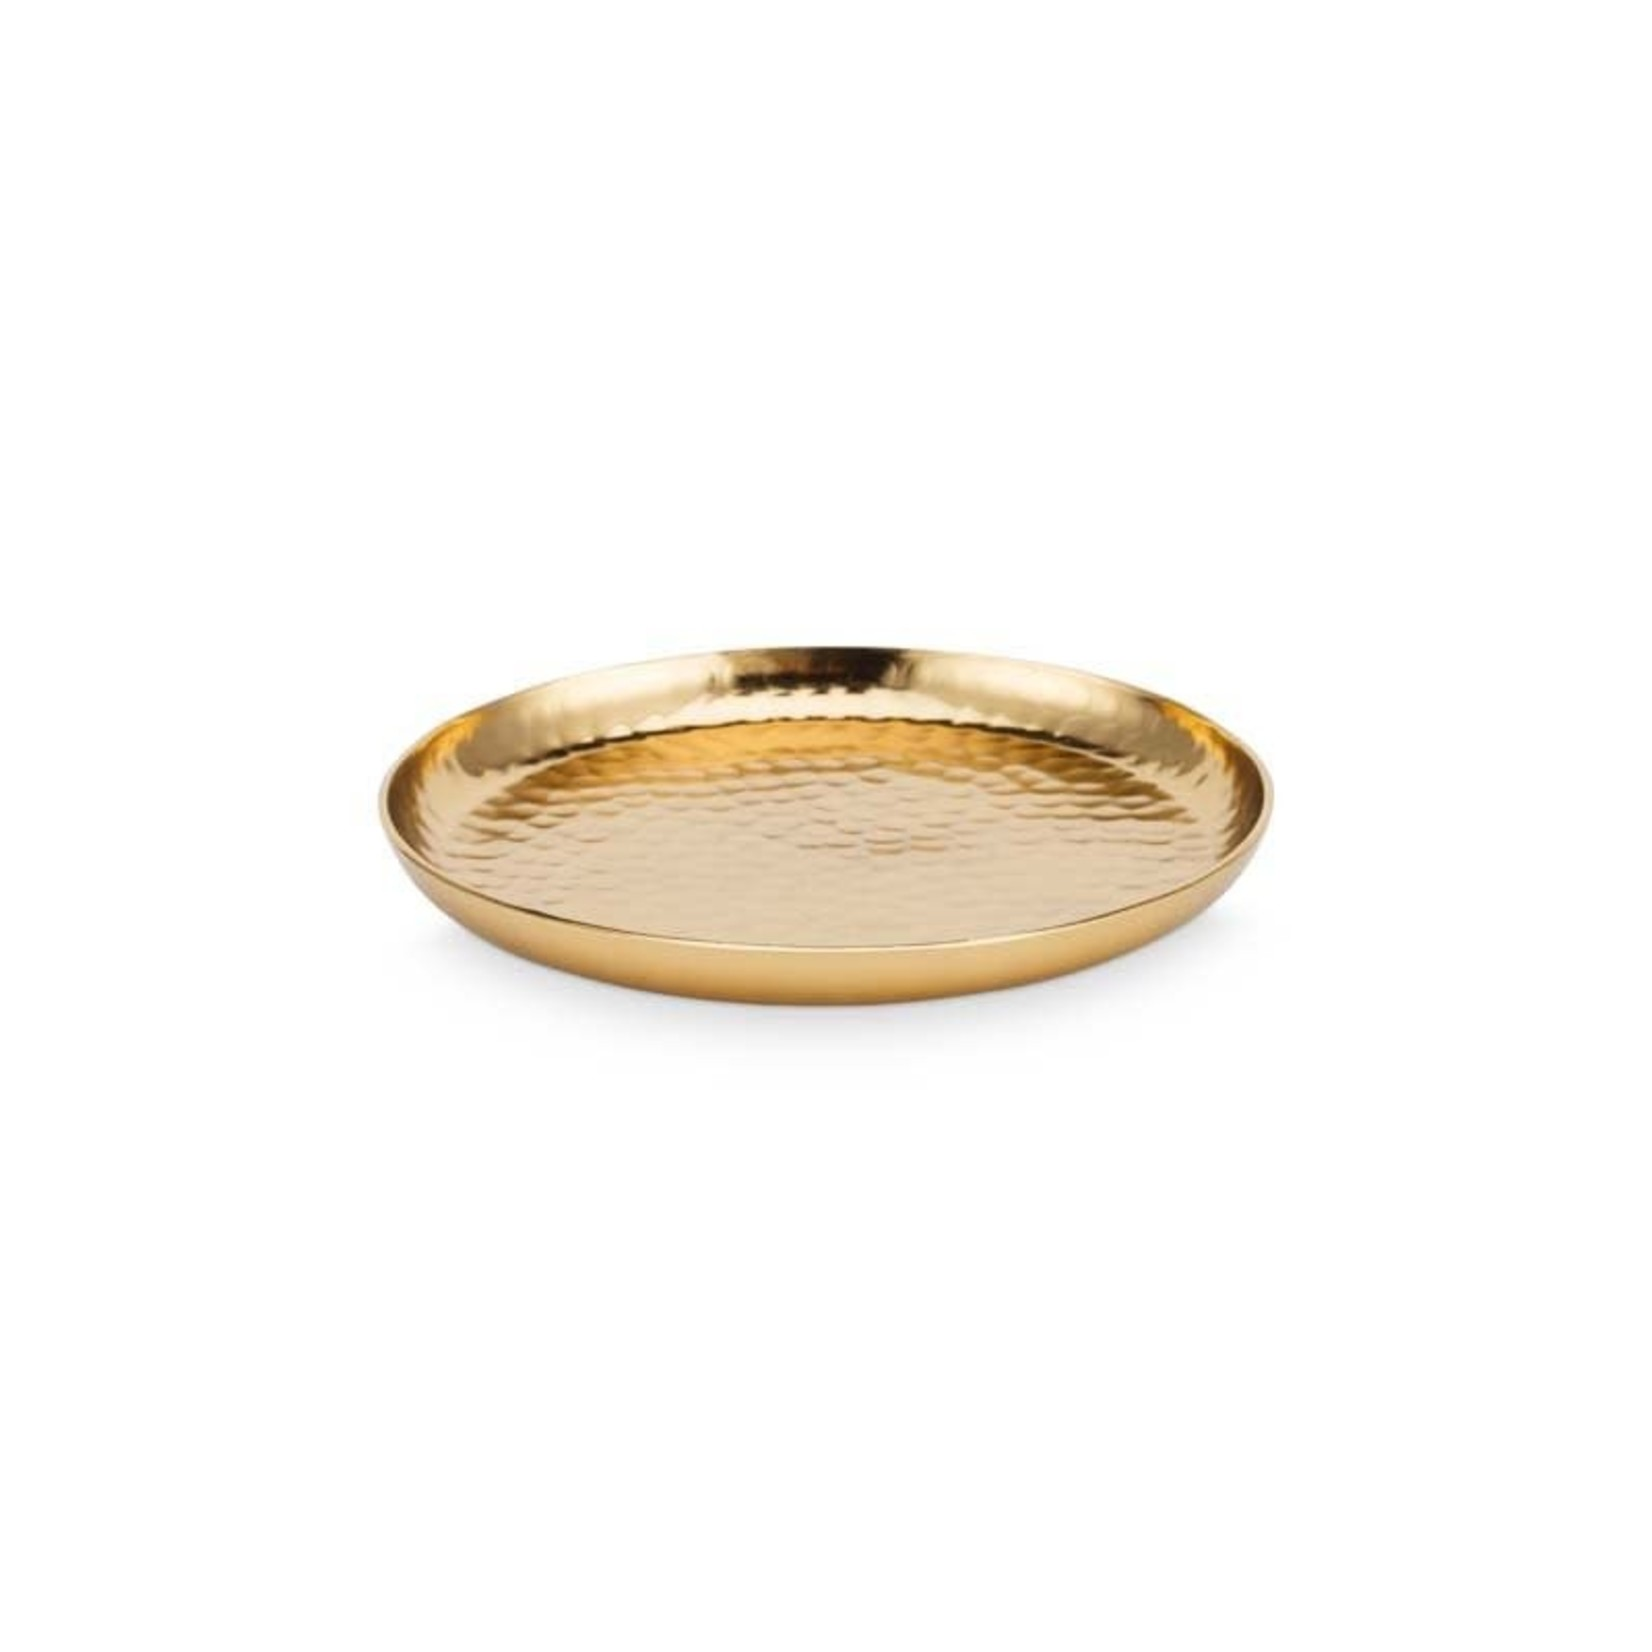 vtwonen Basic collection Plate Metal Gold 15cm